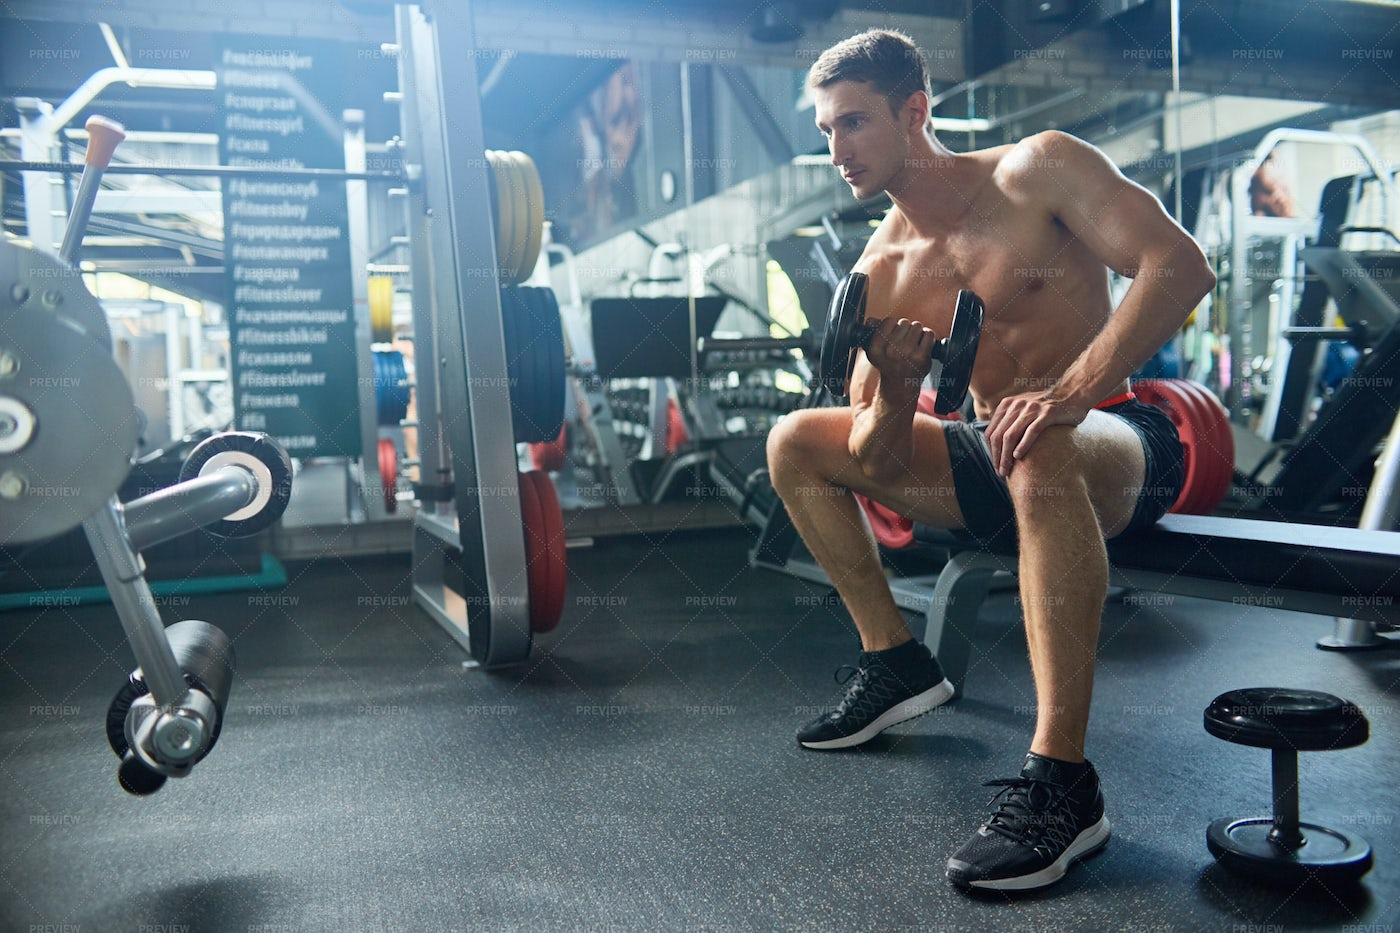 Intensive Training With Dumbbells: Stock Photos